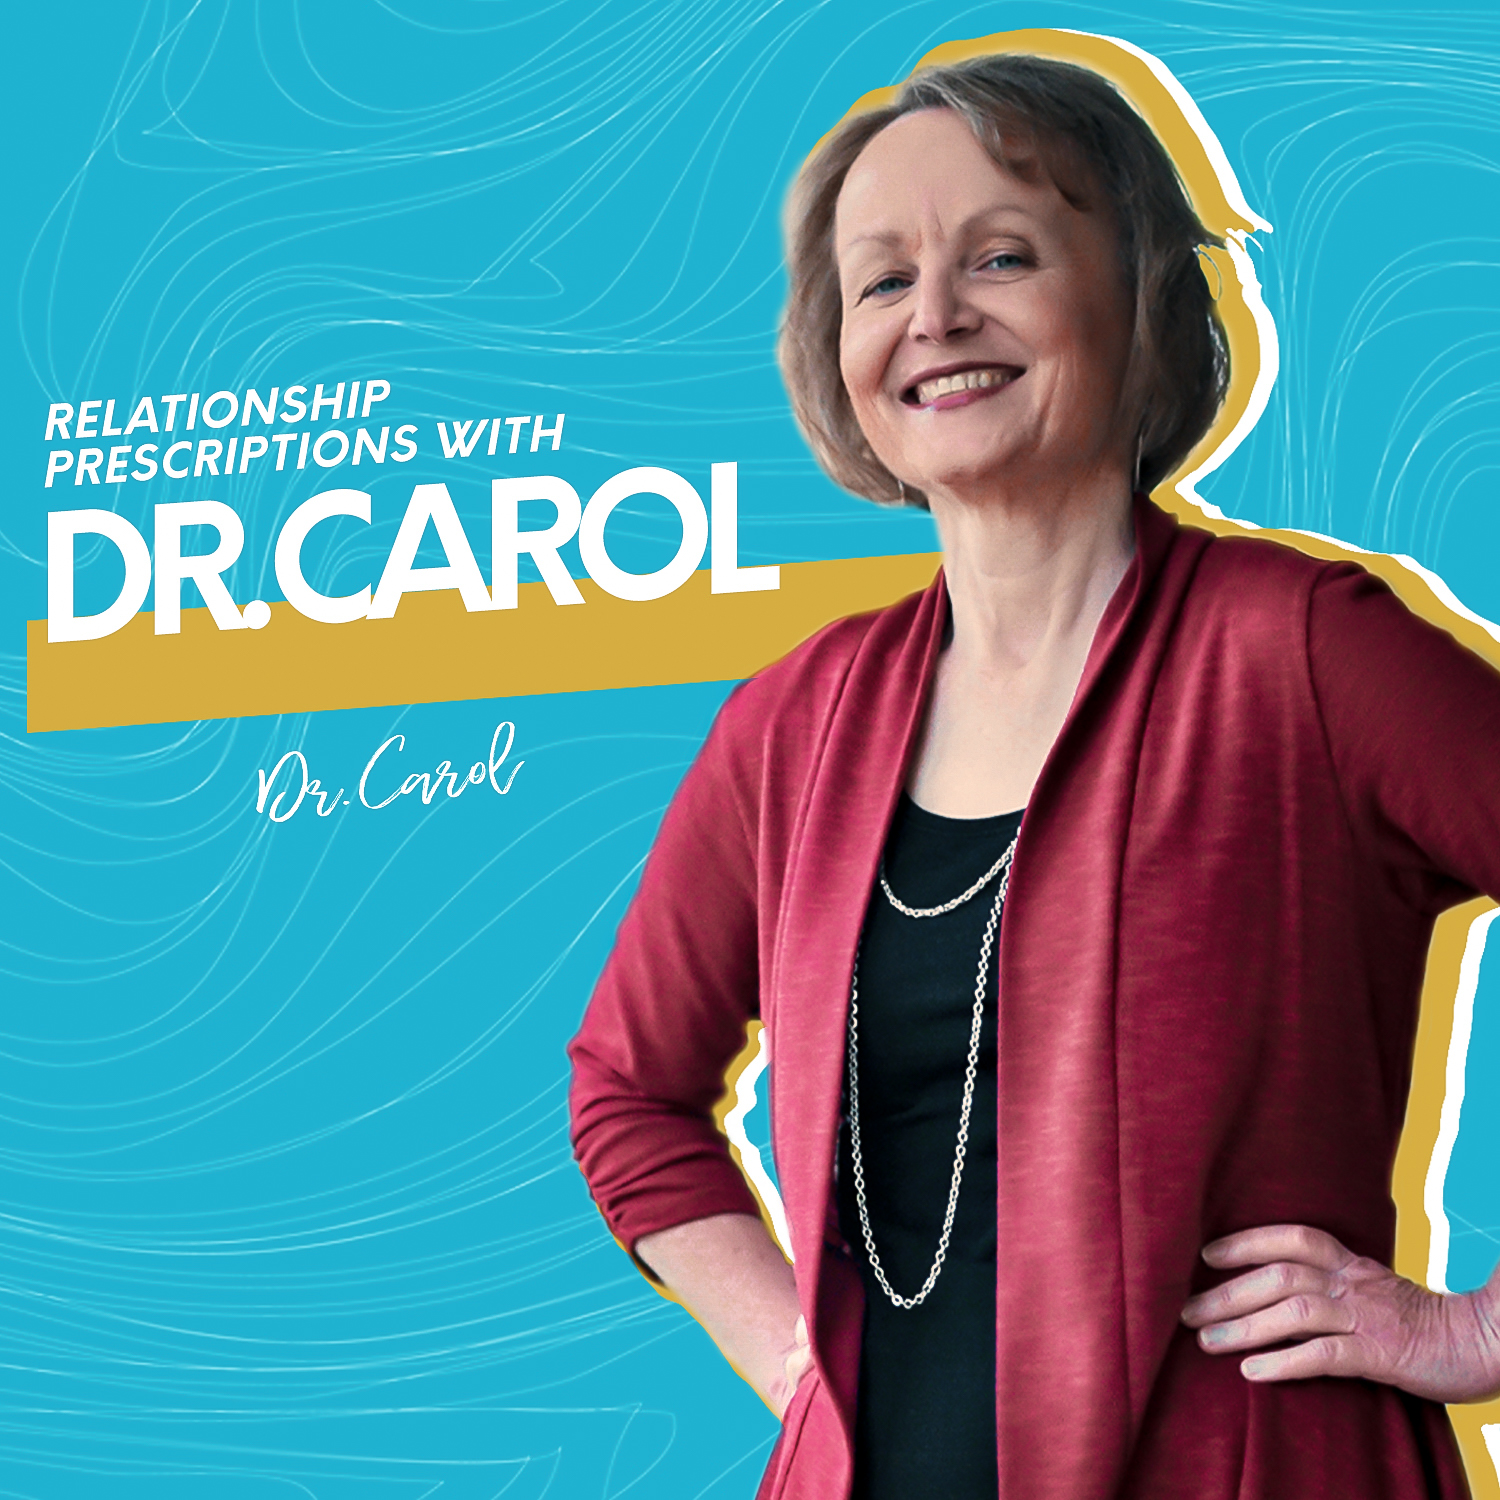 Relationship Prescriptions with Dr. Carol - How Engaging Your Sexual Story Brings Healing From Shame of Abuse